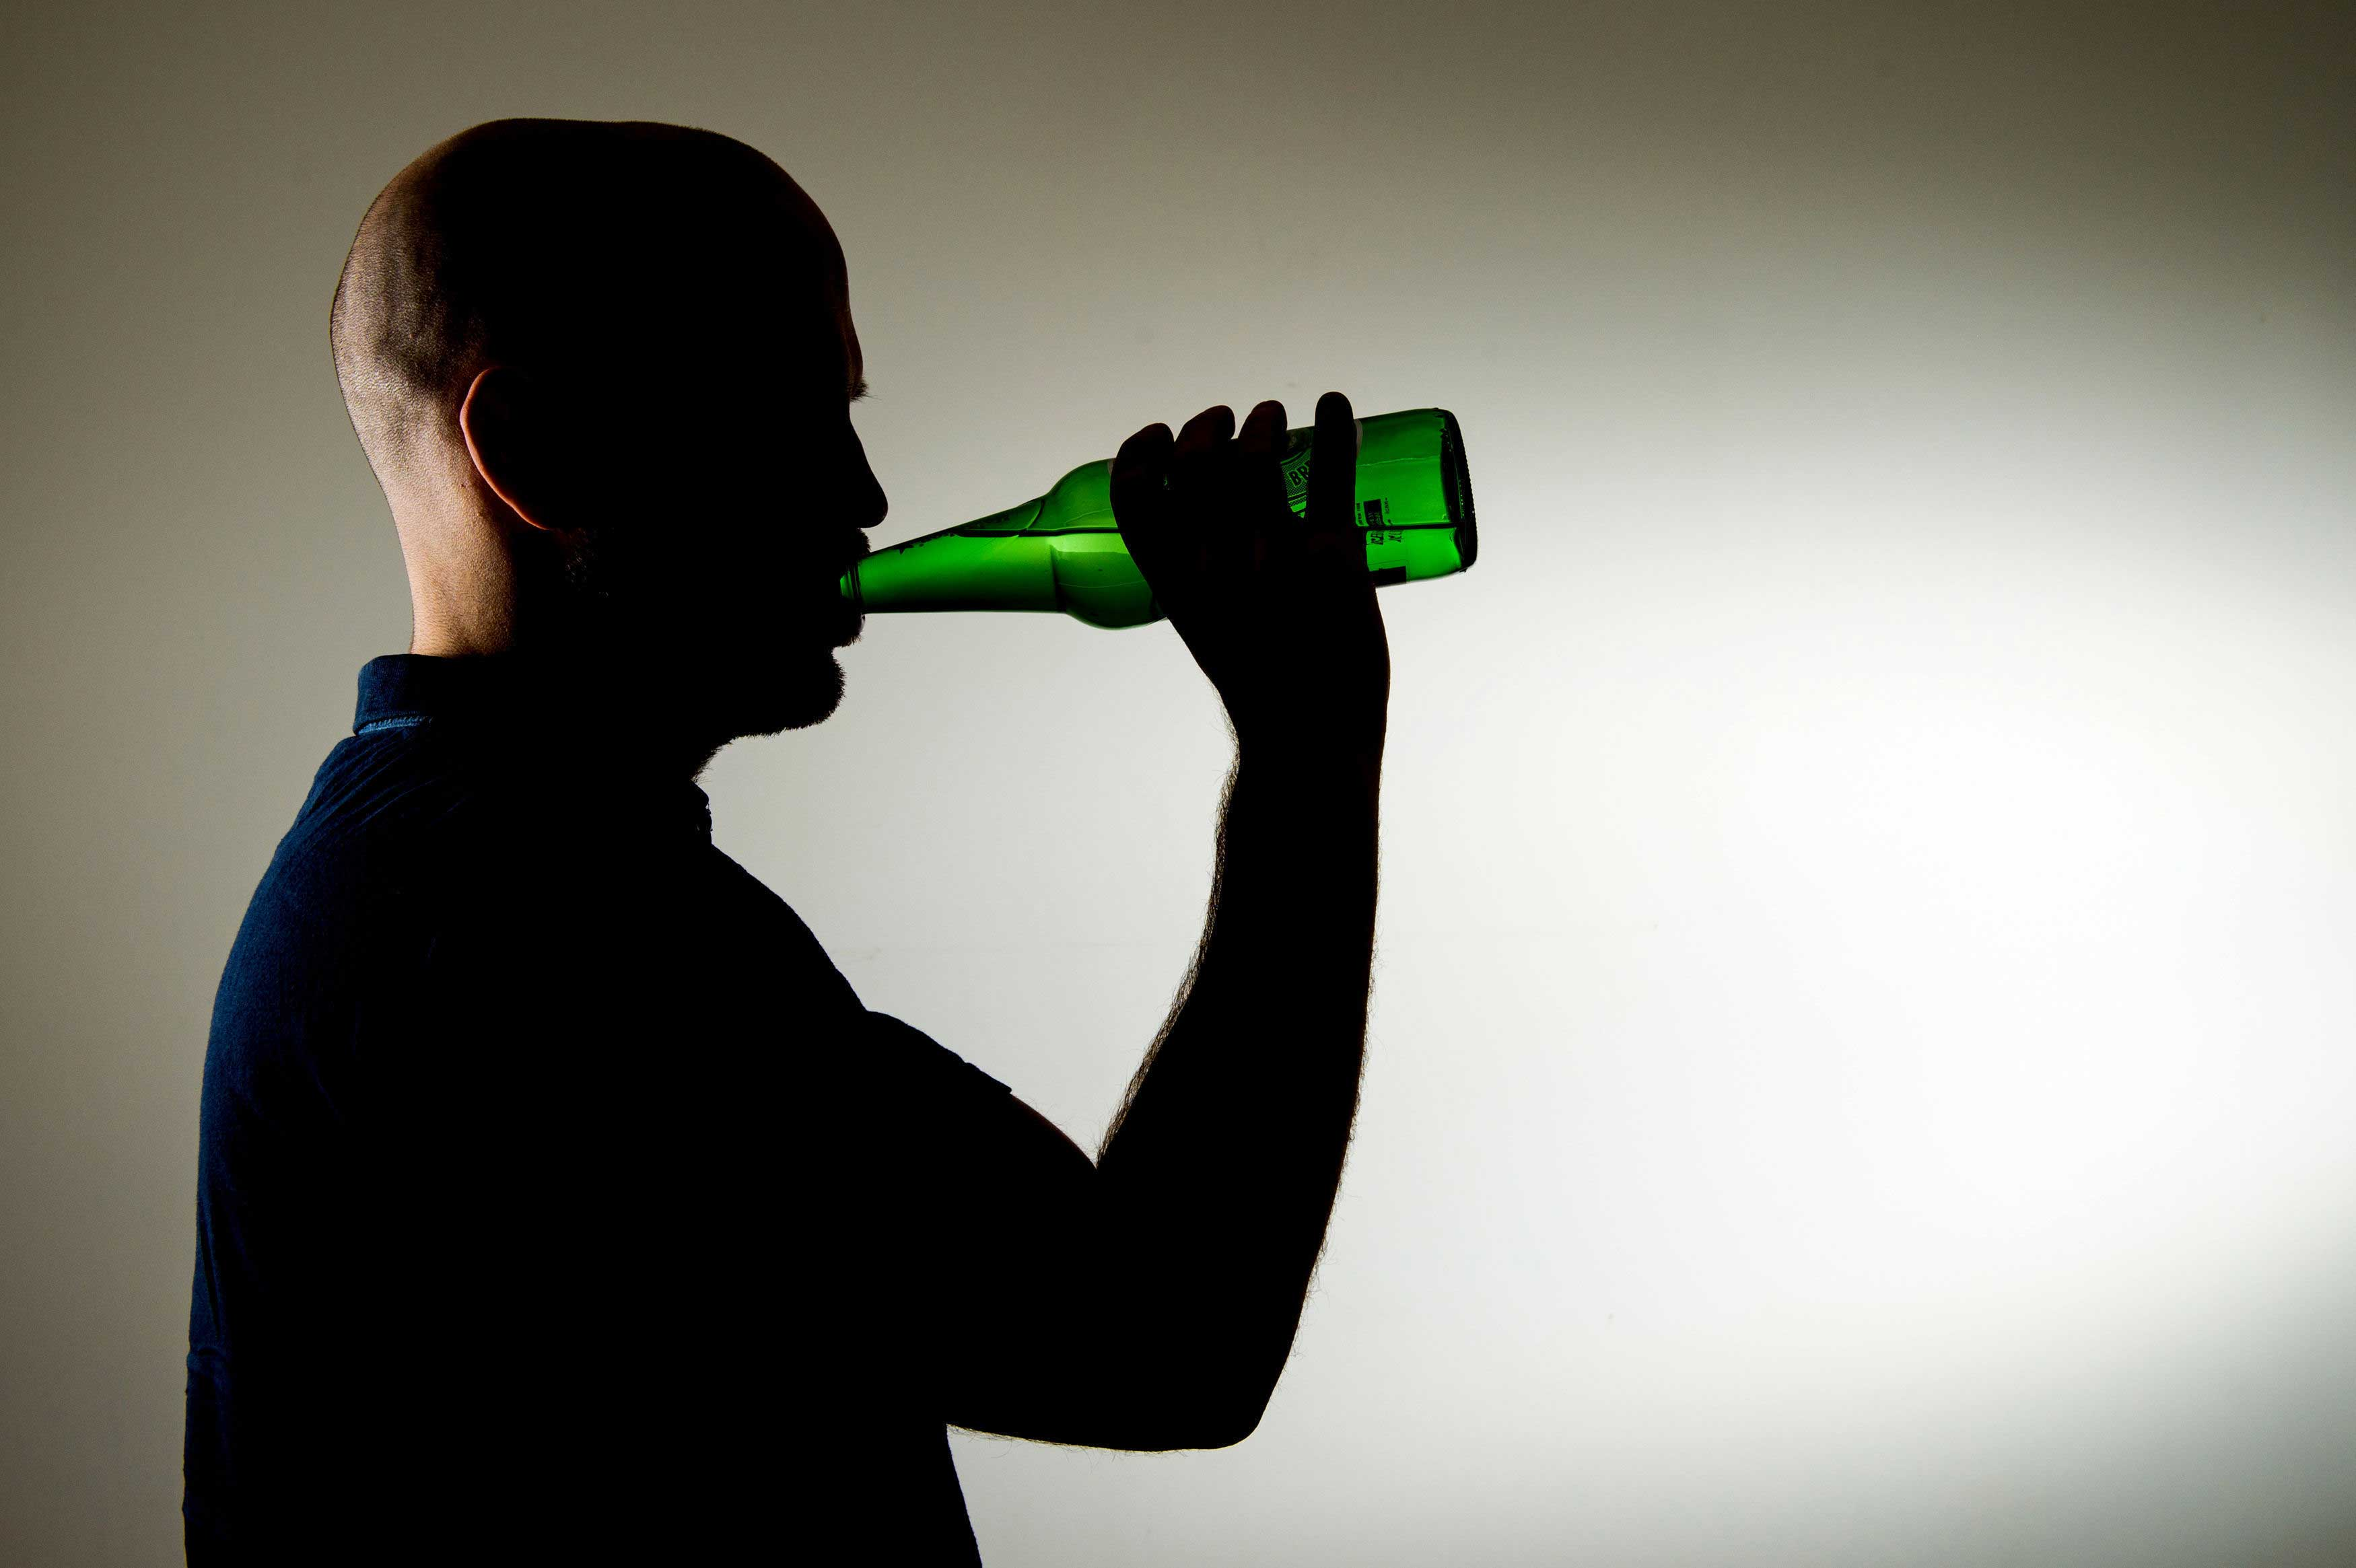 Regular Drinking To Excess Could Take Years Off Your Life, Says Study